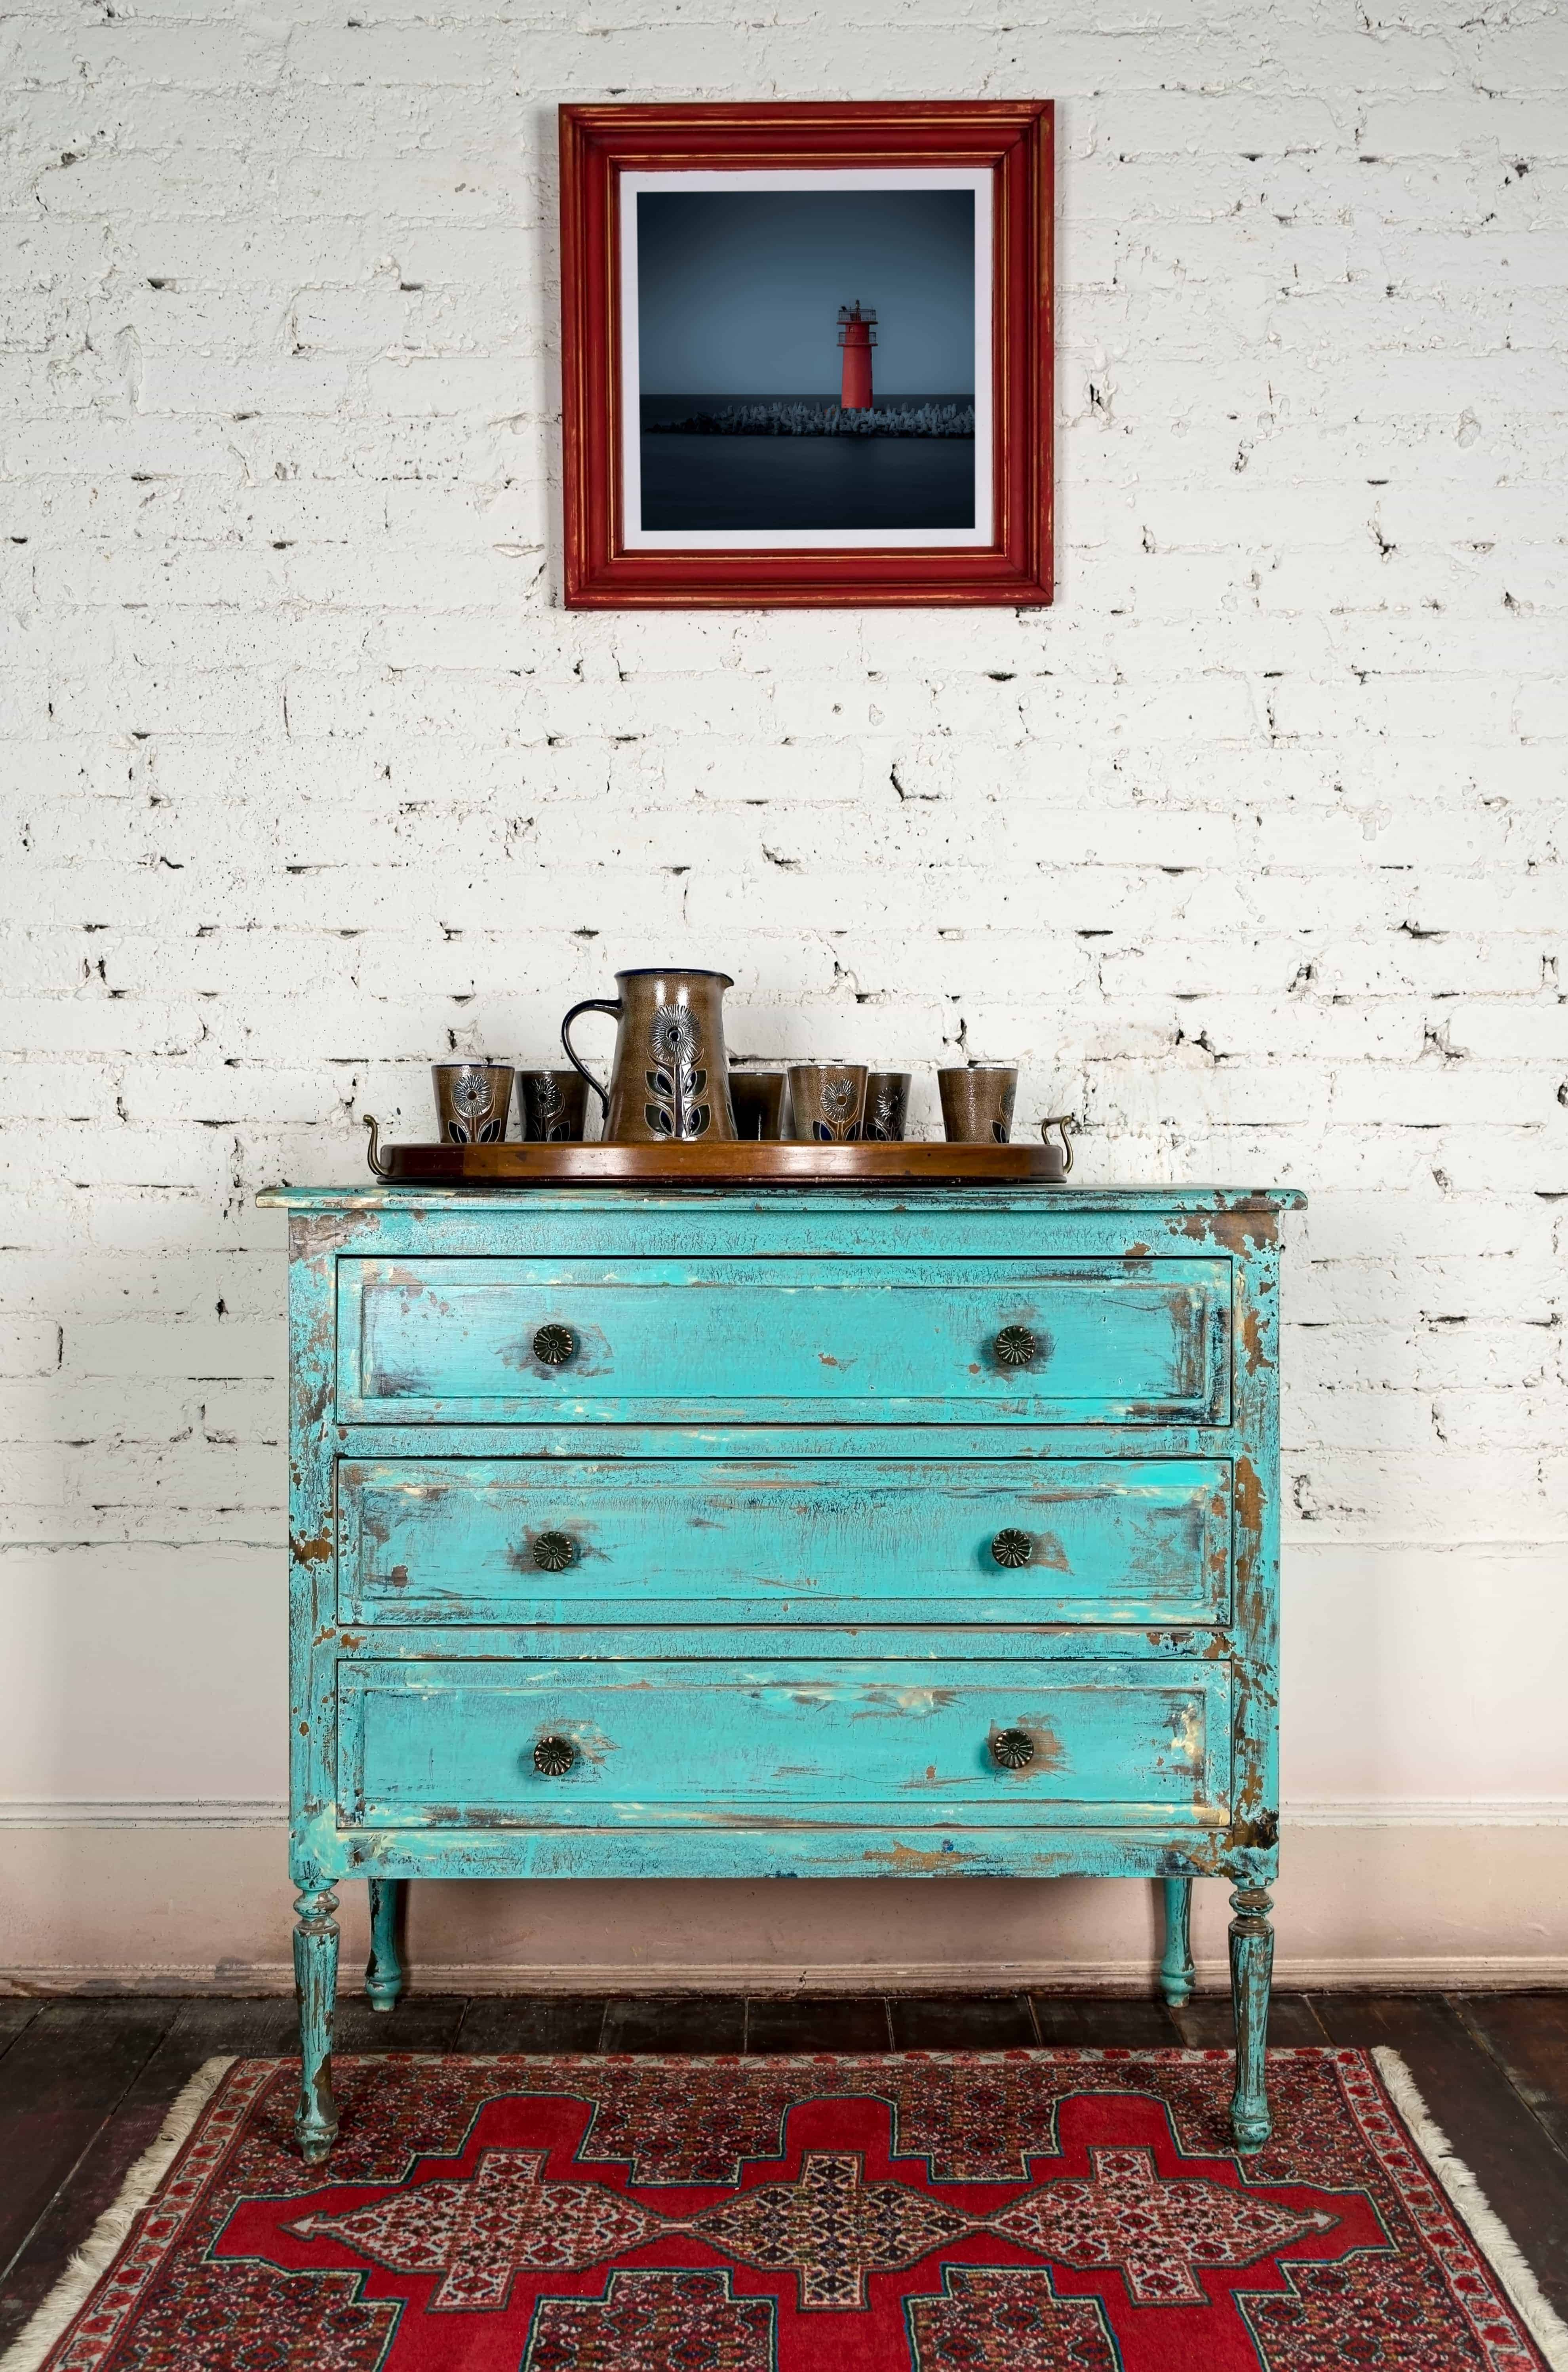 If you're revamping your home decor on a budget, be sure to check out your local Habitat for Humanity ReStore. Great finds for cheap! Use these tips and tricks to find what you need for your budget.